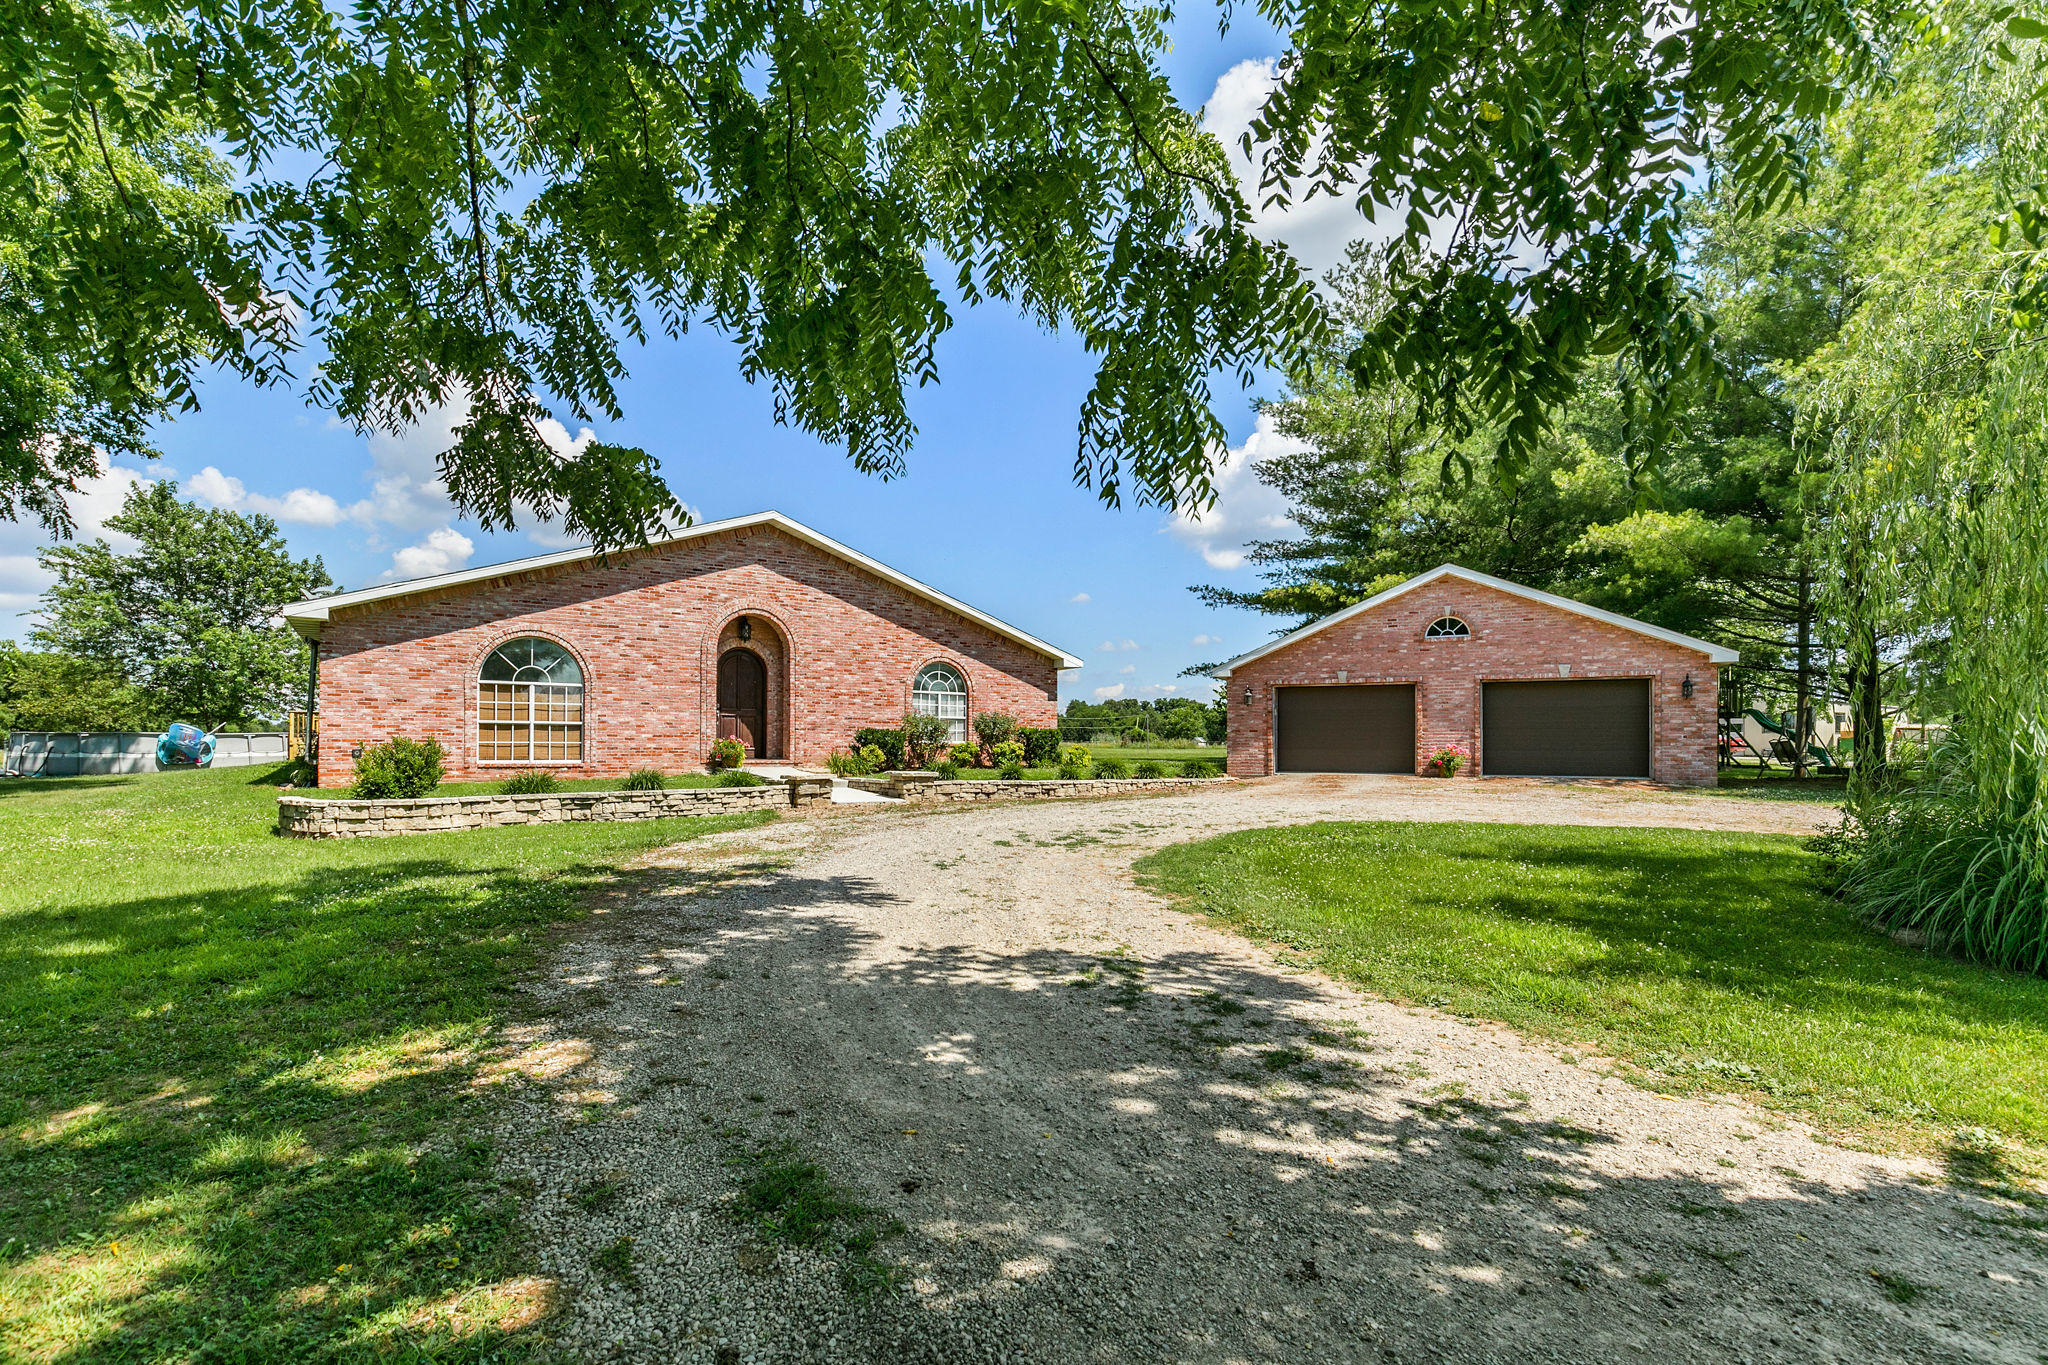 16606 Lawrence 1225 Marionville, MO 65705